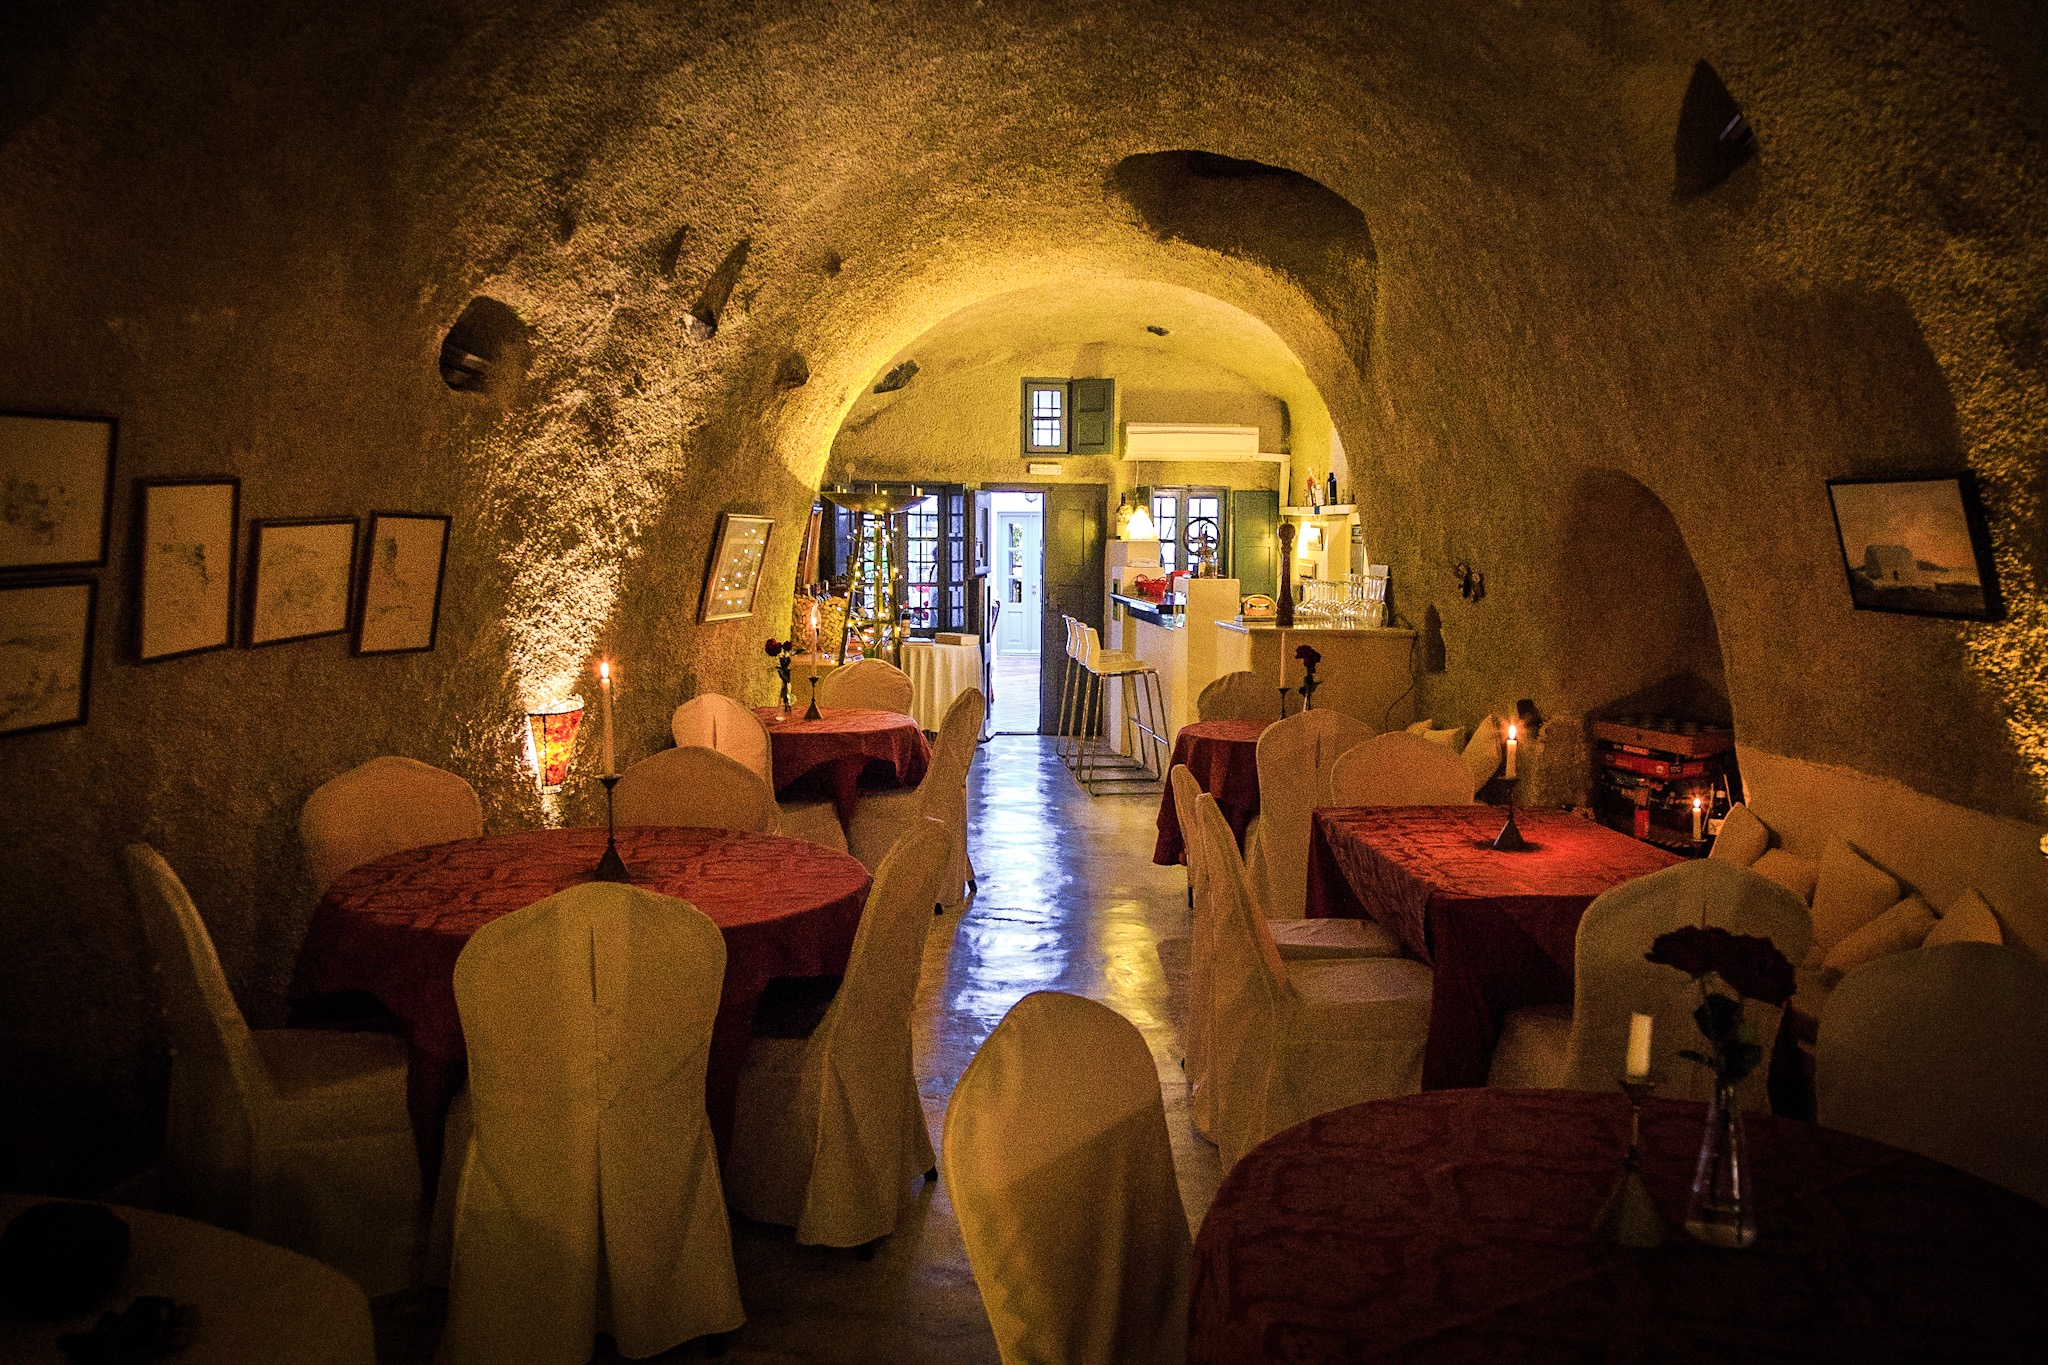 Photo of a wine bar interior, Santorini by Rick McEvoy Travel Photographer